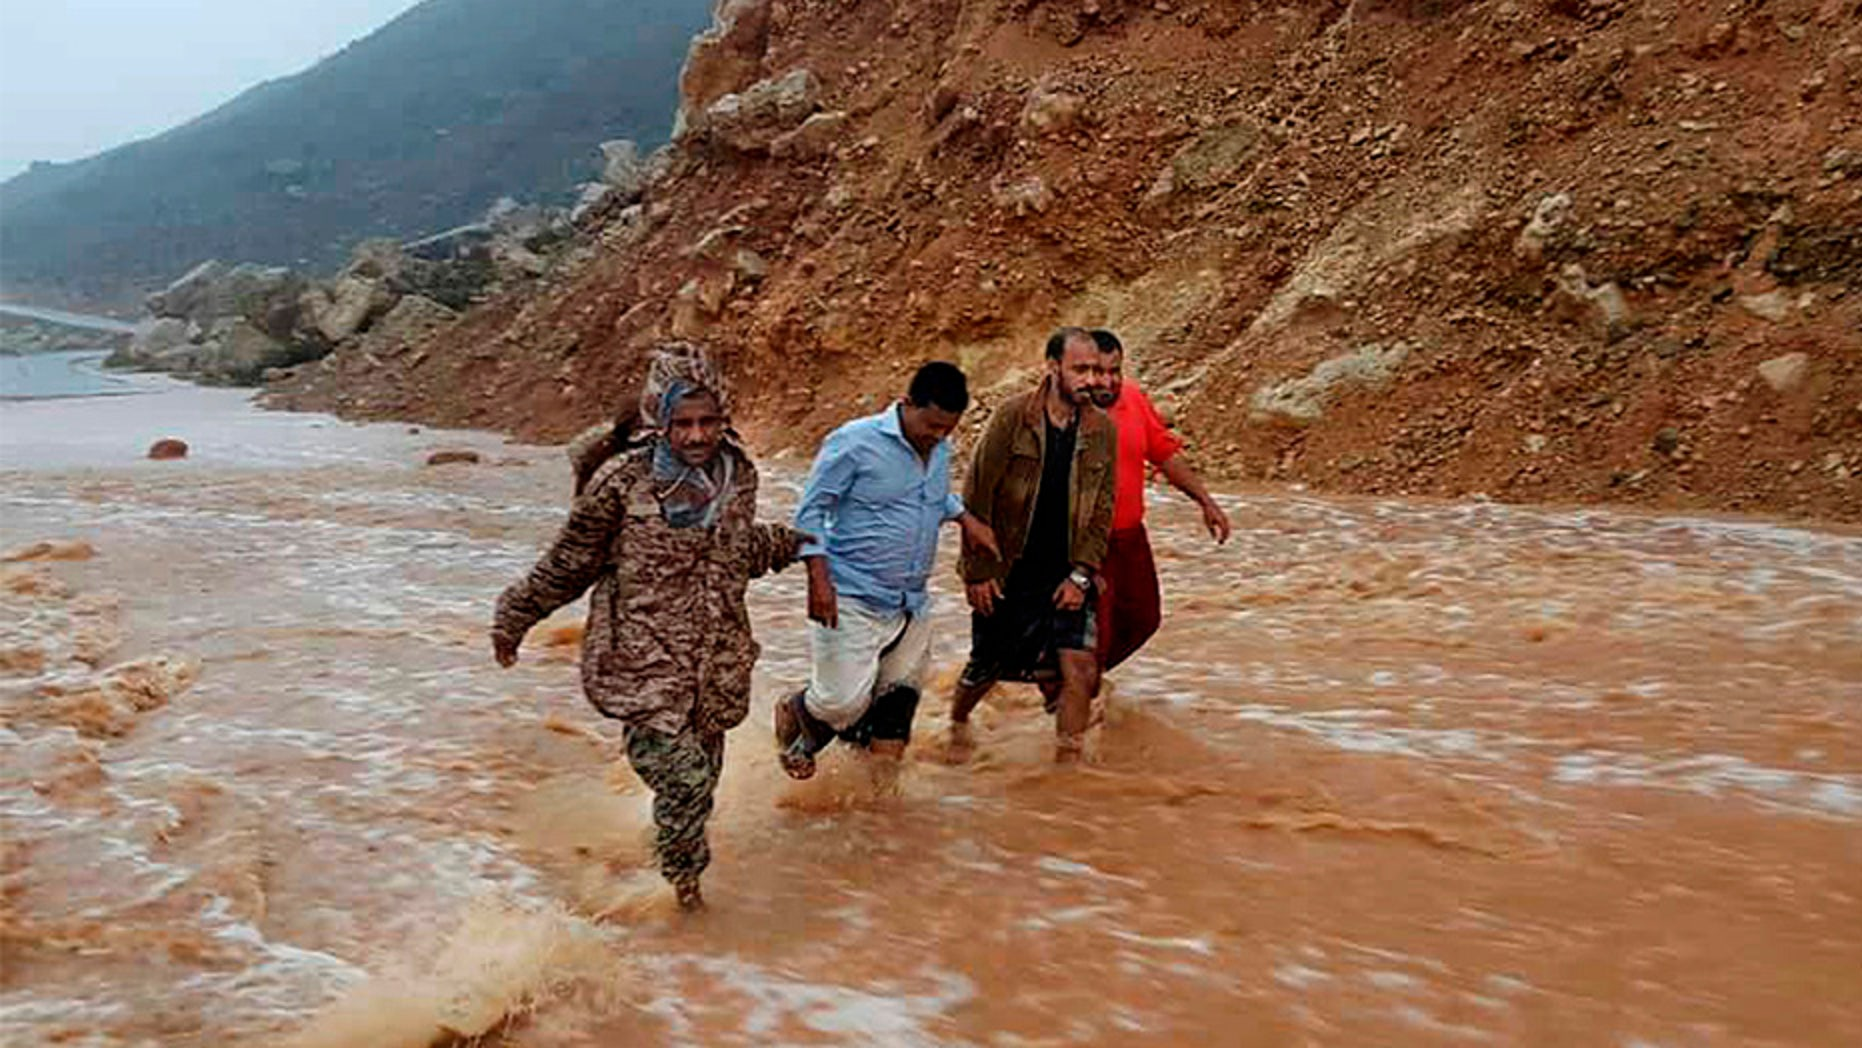 May 24, 2018: Men walk on a road flooded after heavy rain and strong winds caused damage in Hadibu as Cyclone Mekunu pounded the Yemeni island of Socotra.